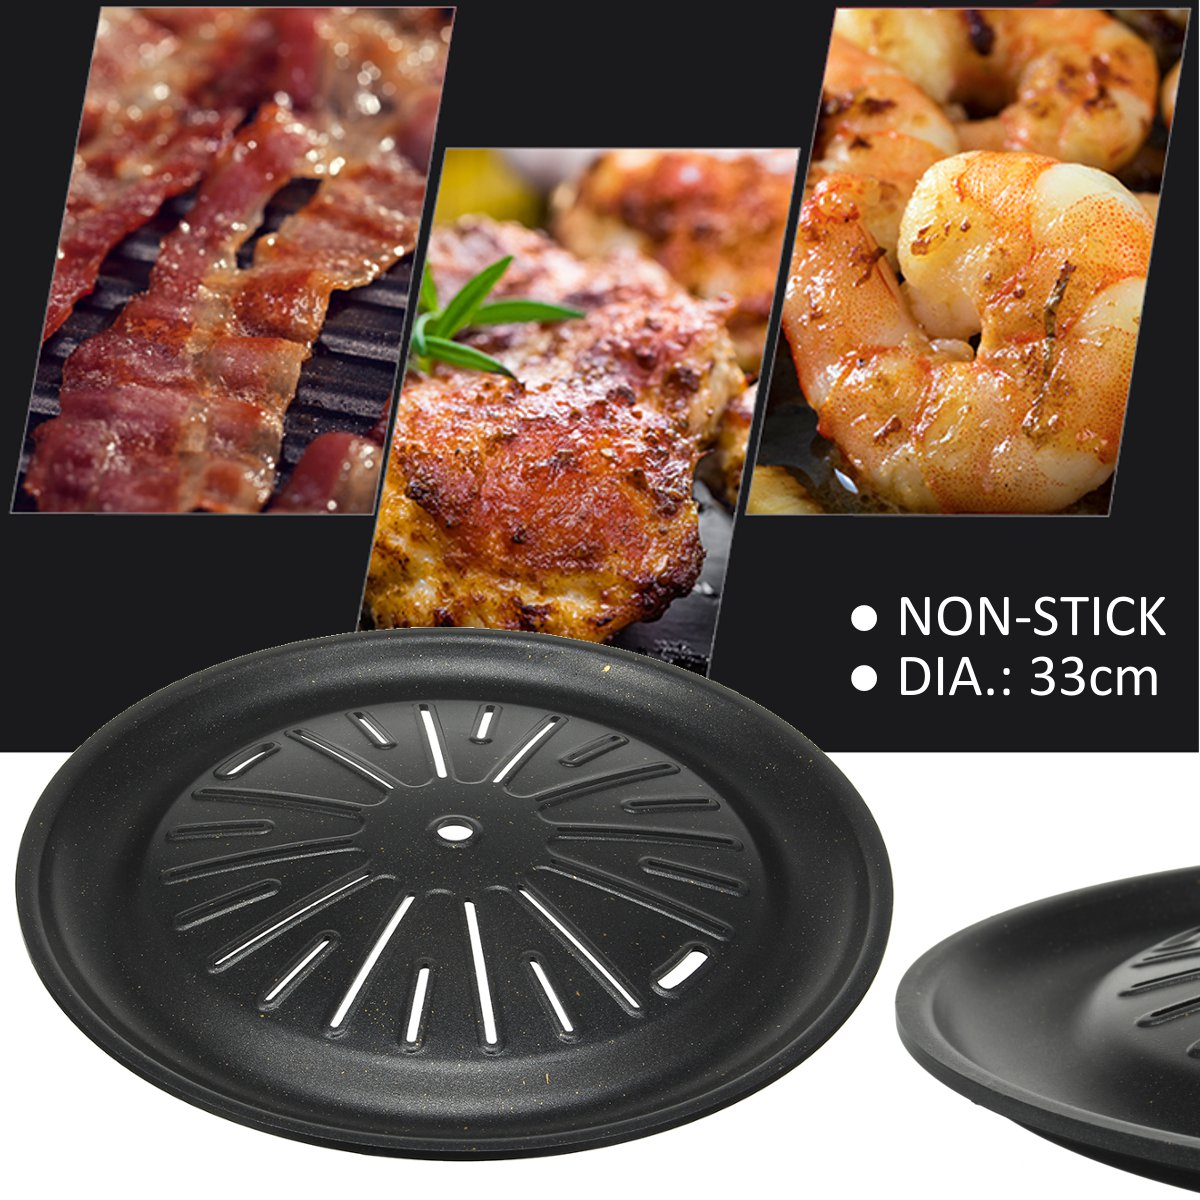 33cm Korean BBQ Grill Pan Outdoor Barbecue Plate Round Aluminum Plate Picnic Non-stick Pan Camping BBQ Cooking Tools 13 Inch